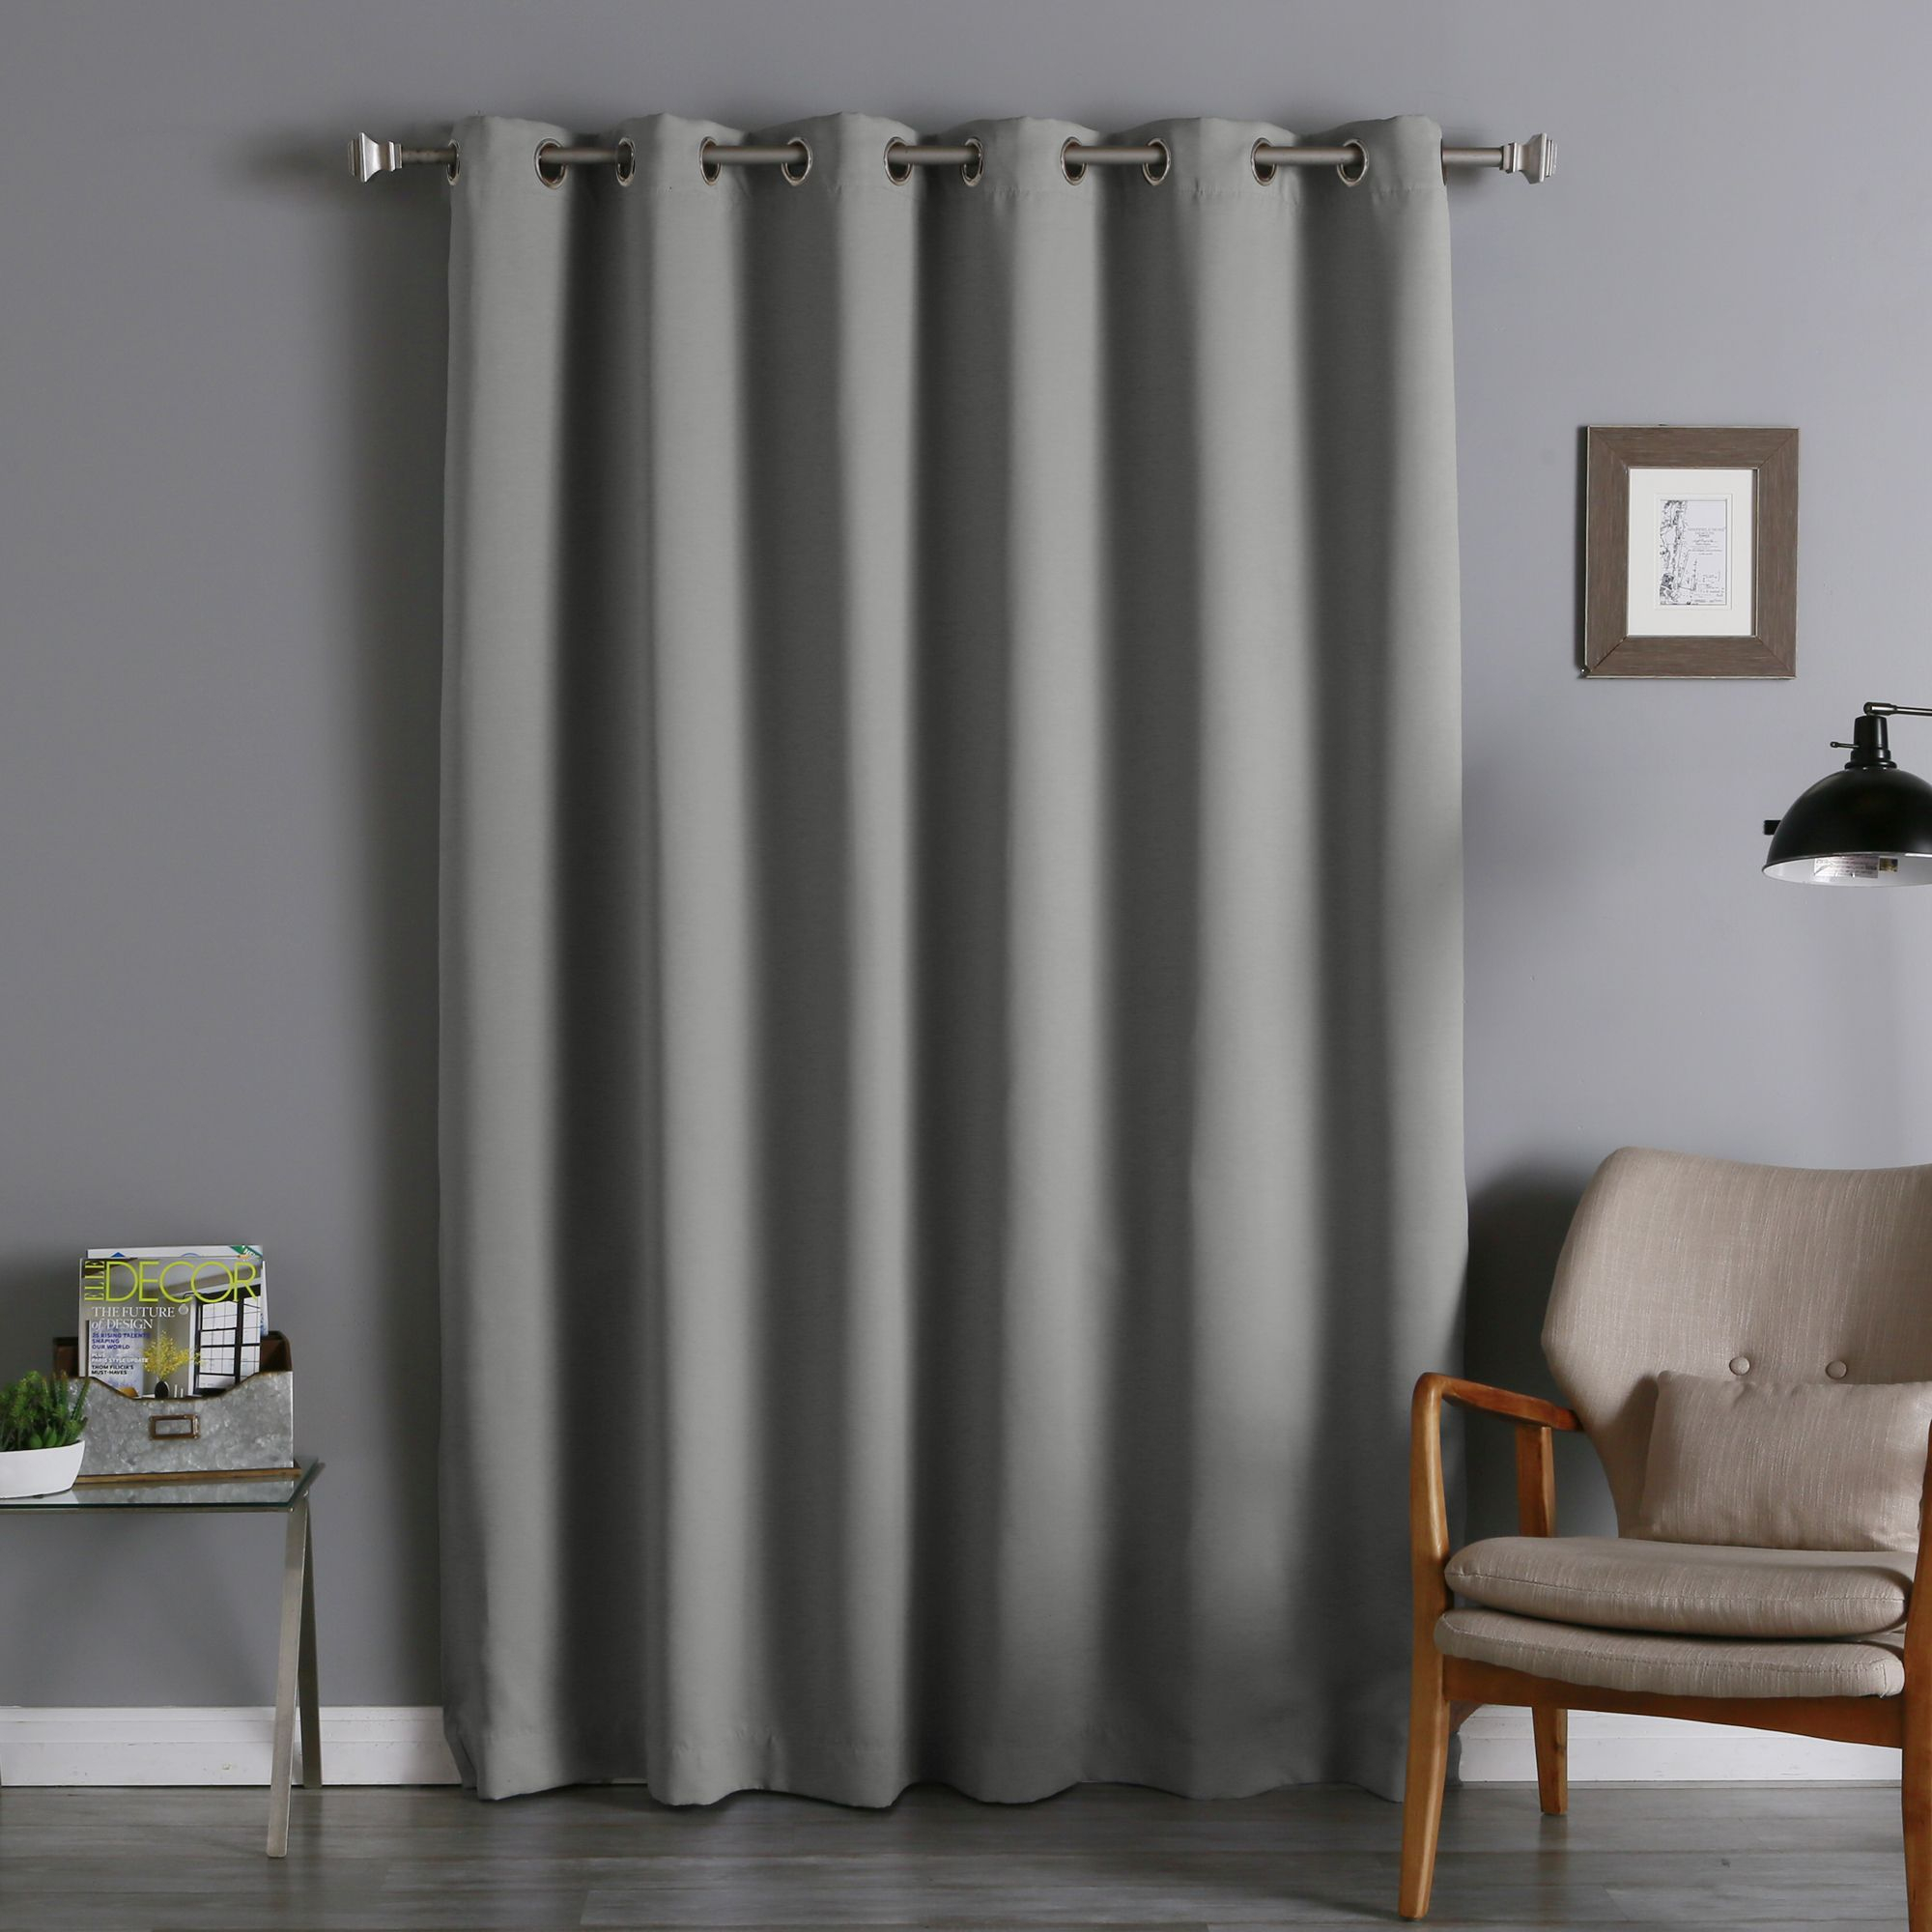 Aurora Home Silver Grommet Top Wide Width Thermal Insulated Throughout Silvertone Grommet Thermal Insulated Blackout Curtain Panel Pairs (View 18 of 30)